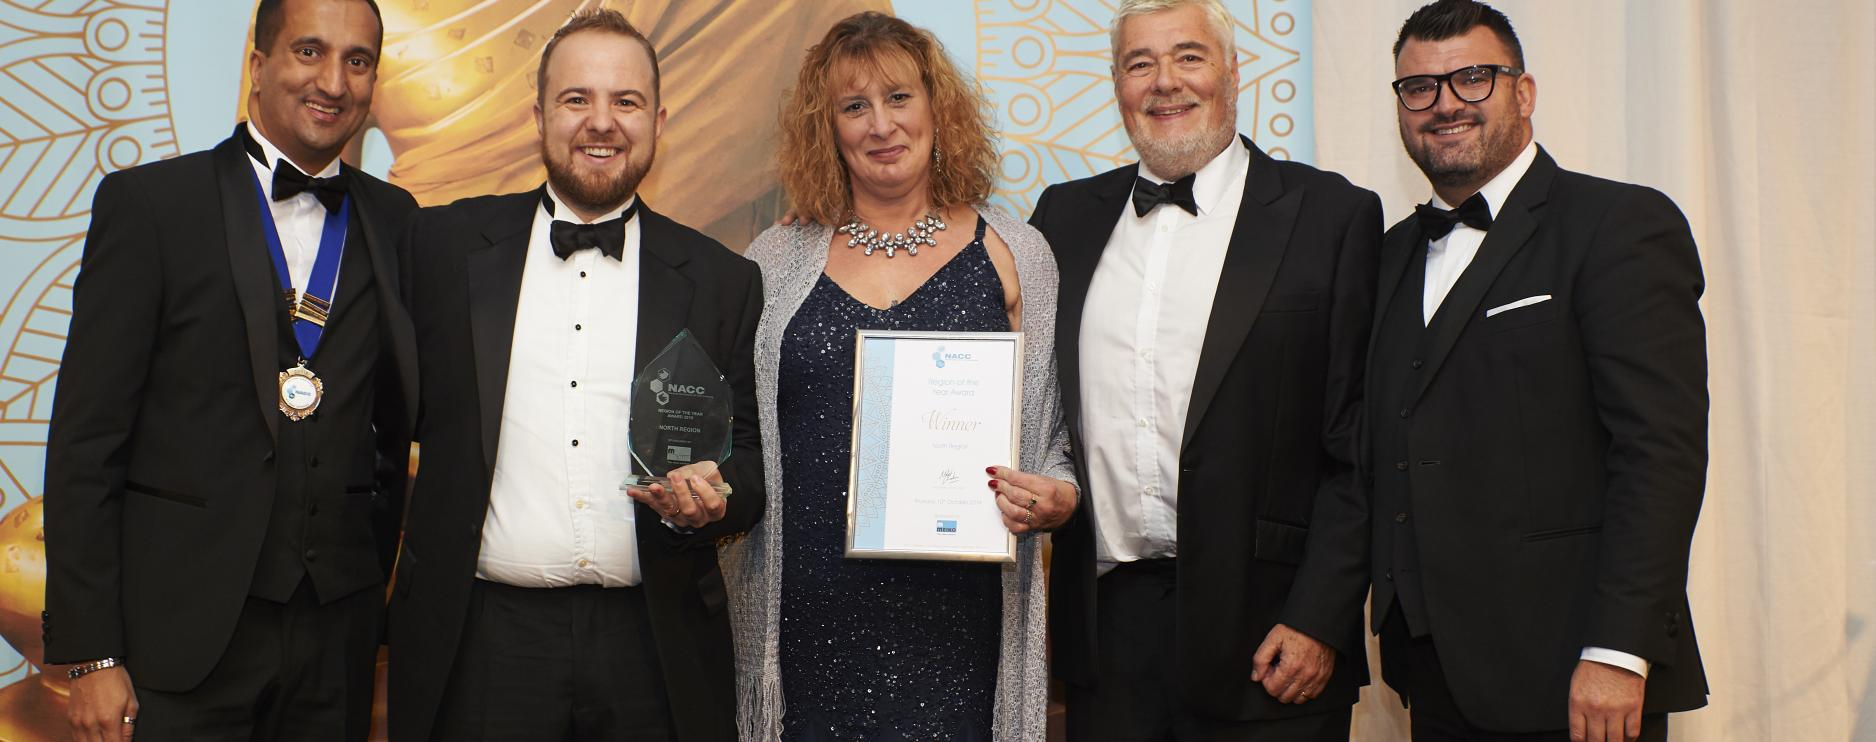 national association care catering annual awards